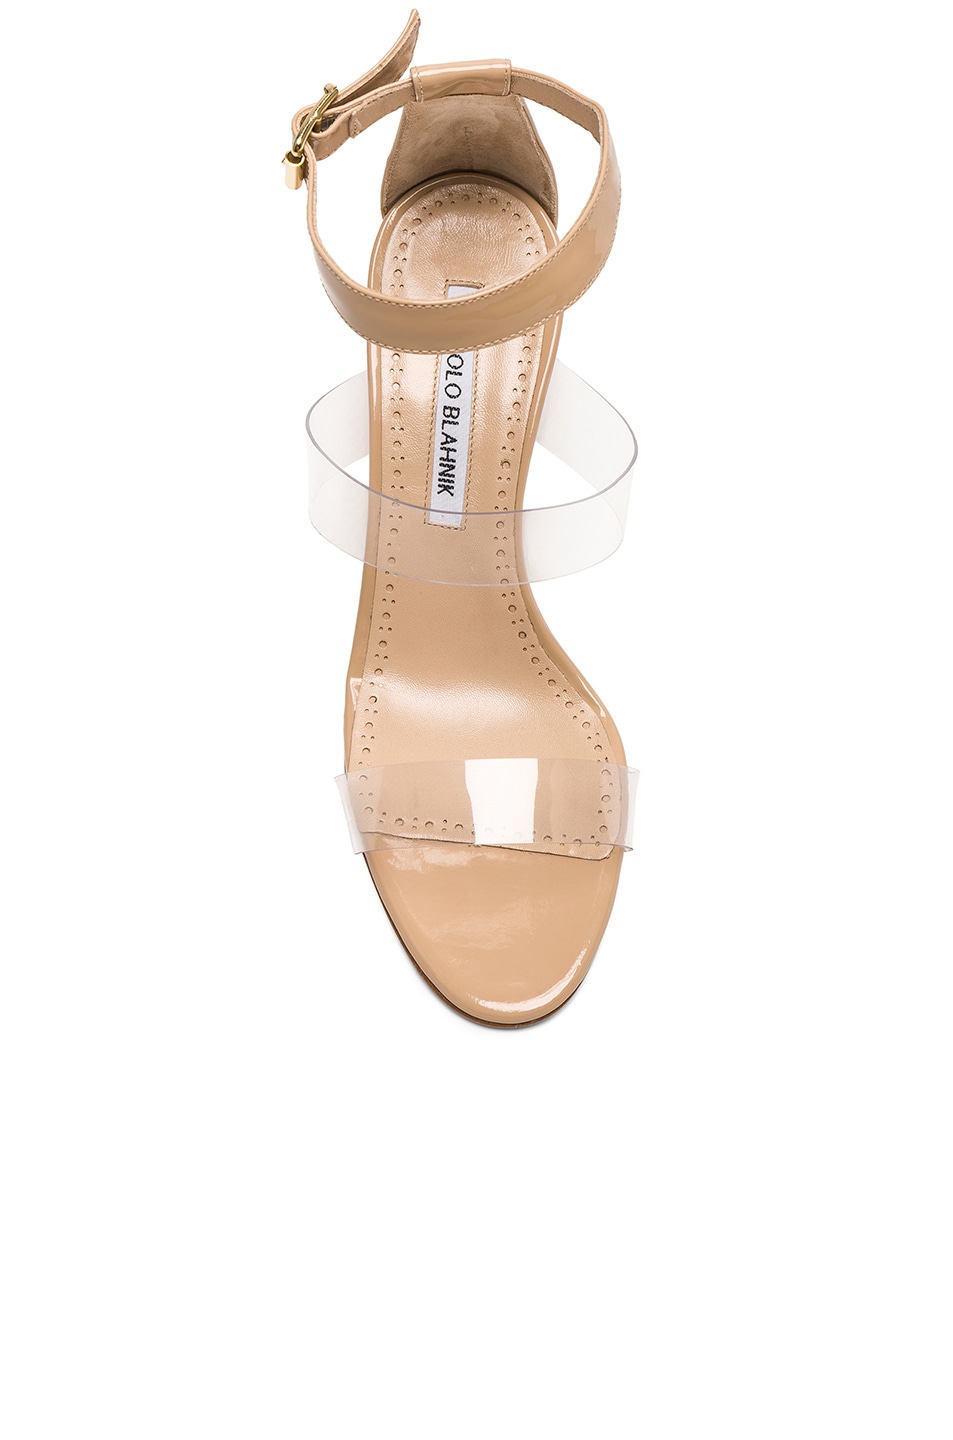 Image 4 of Manolo Blahnik Patent Leather & PVC Kaotic 90 Sandals in Nude Patent & Clear PVC